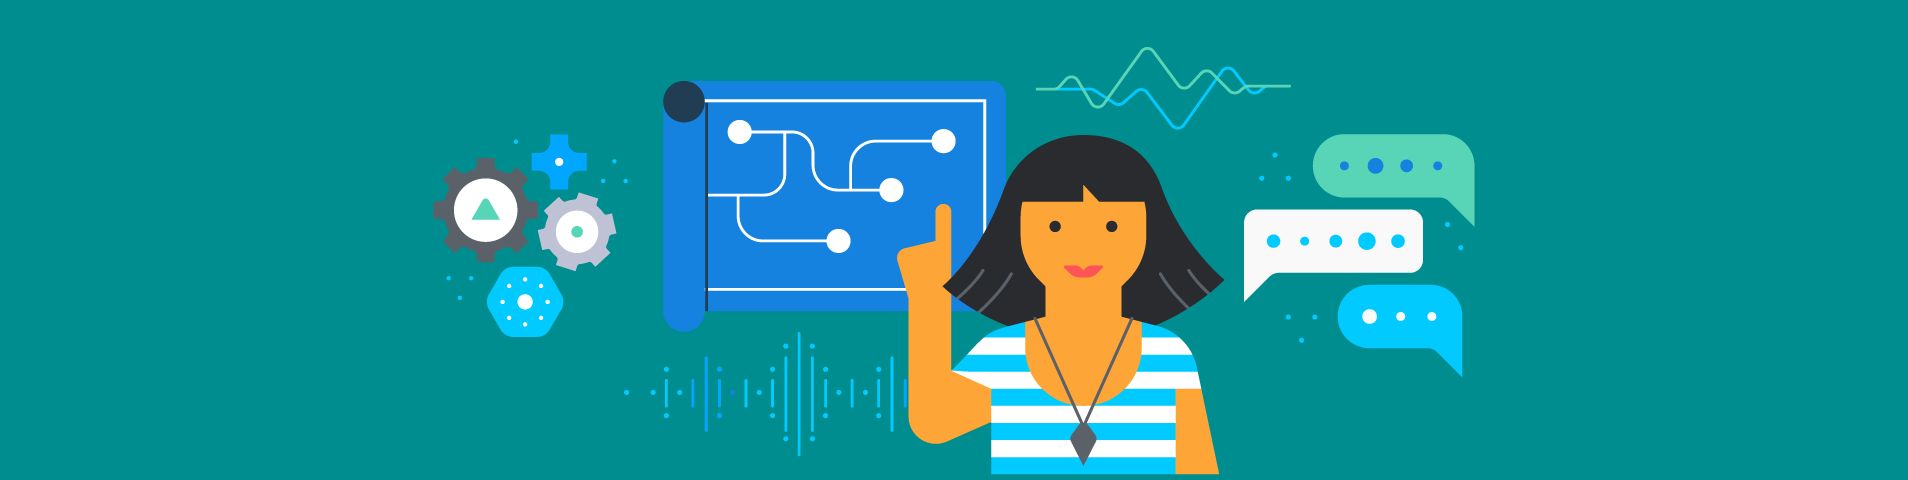 Getting Started with Cake Walk: Using the Alexa Settings API to Look